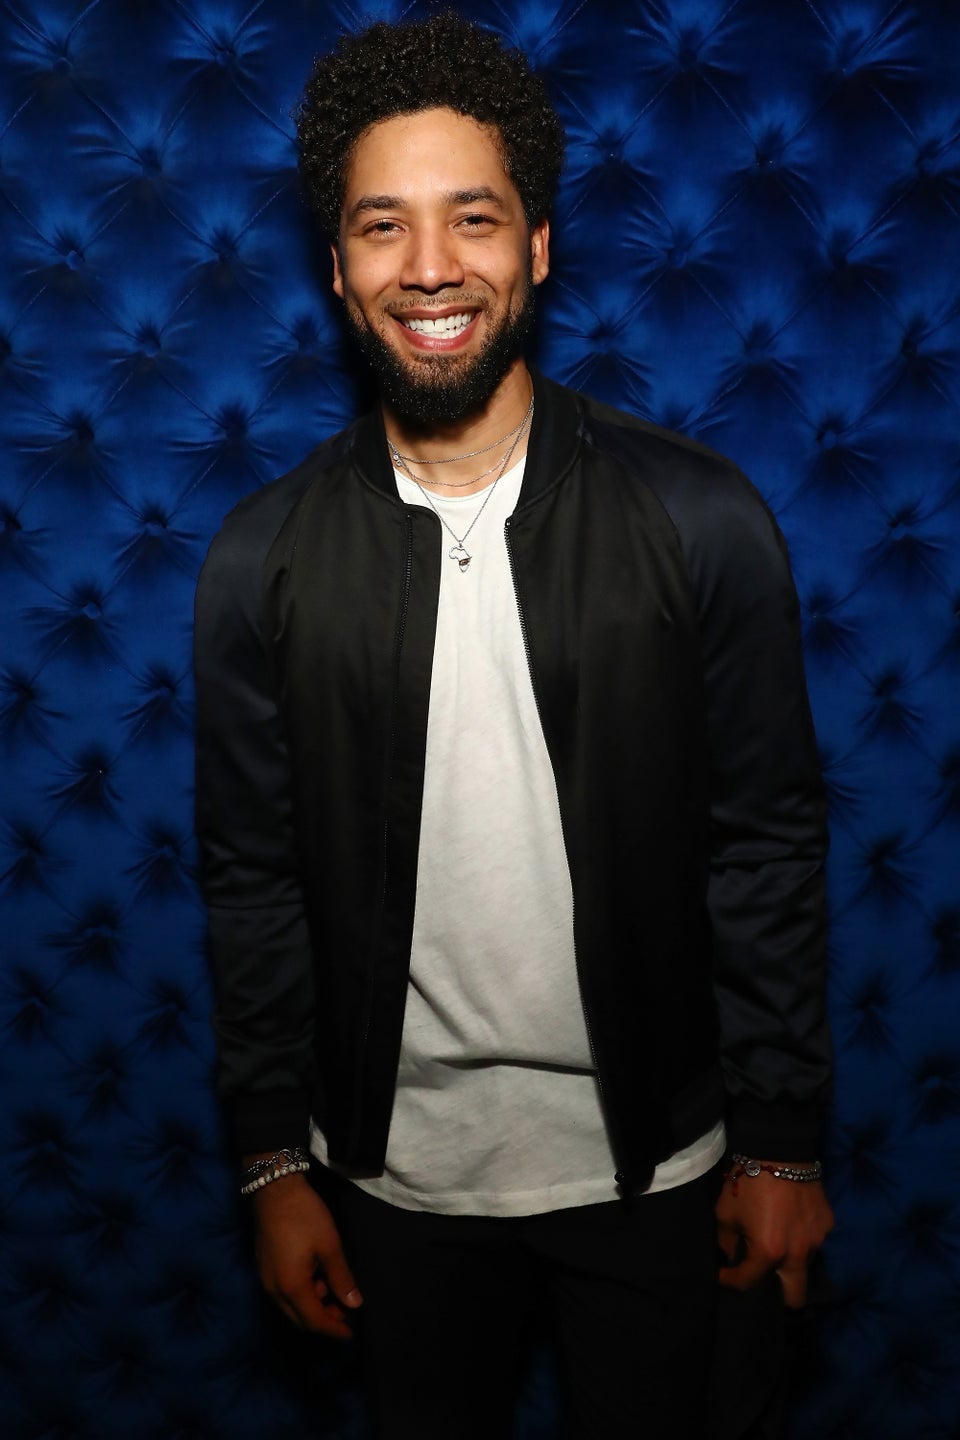 'Sum of My Music:' Jussie Smollett Gives Us A Track-By-Track Deep Dive Into His DebutAlbum